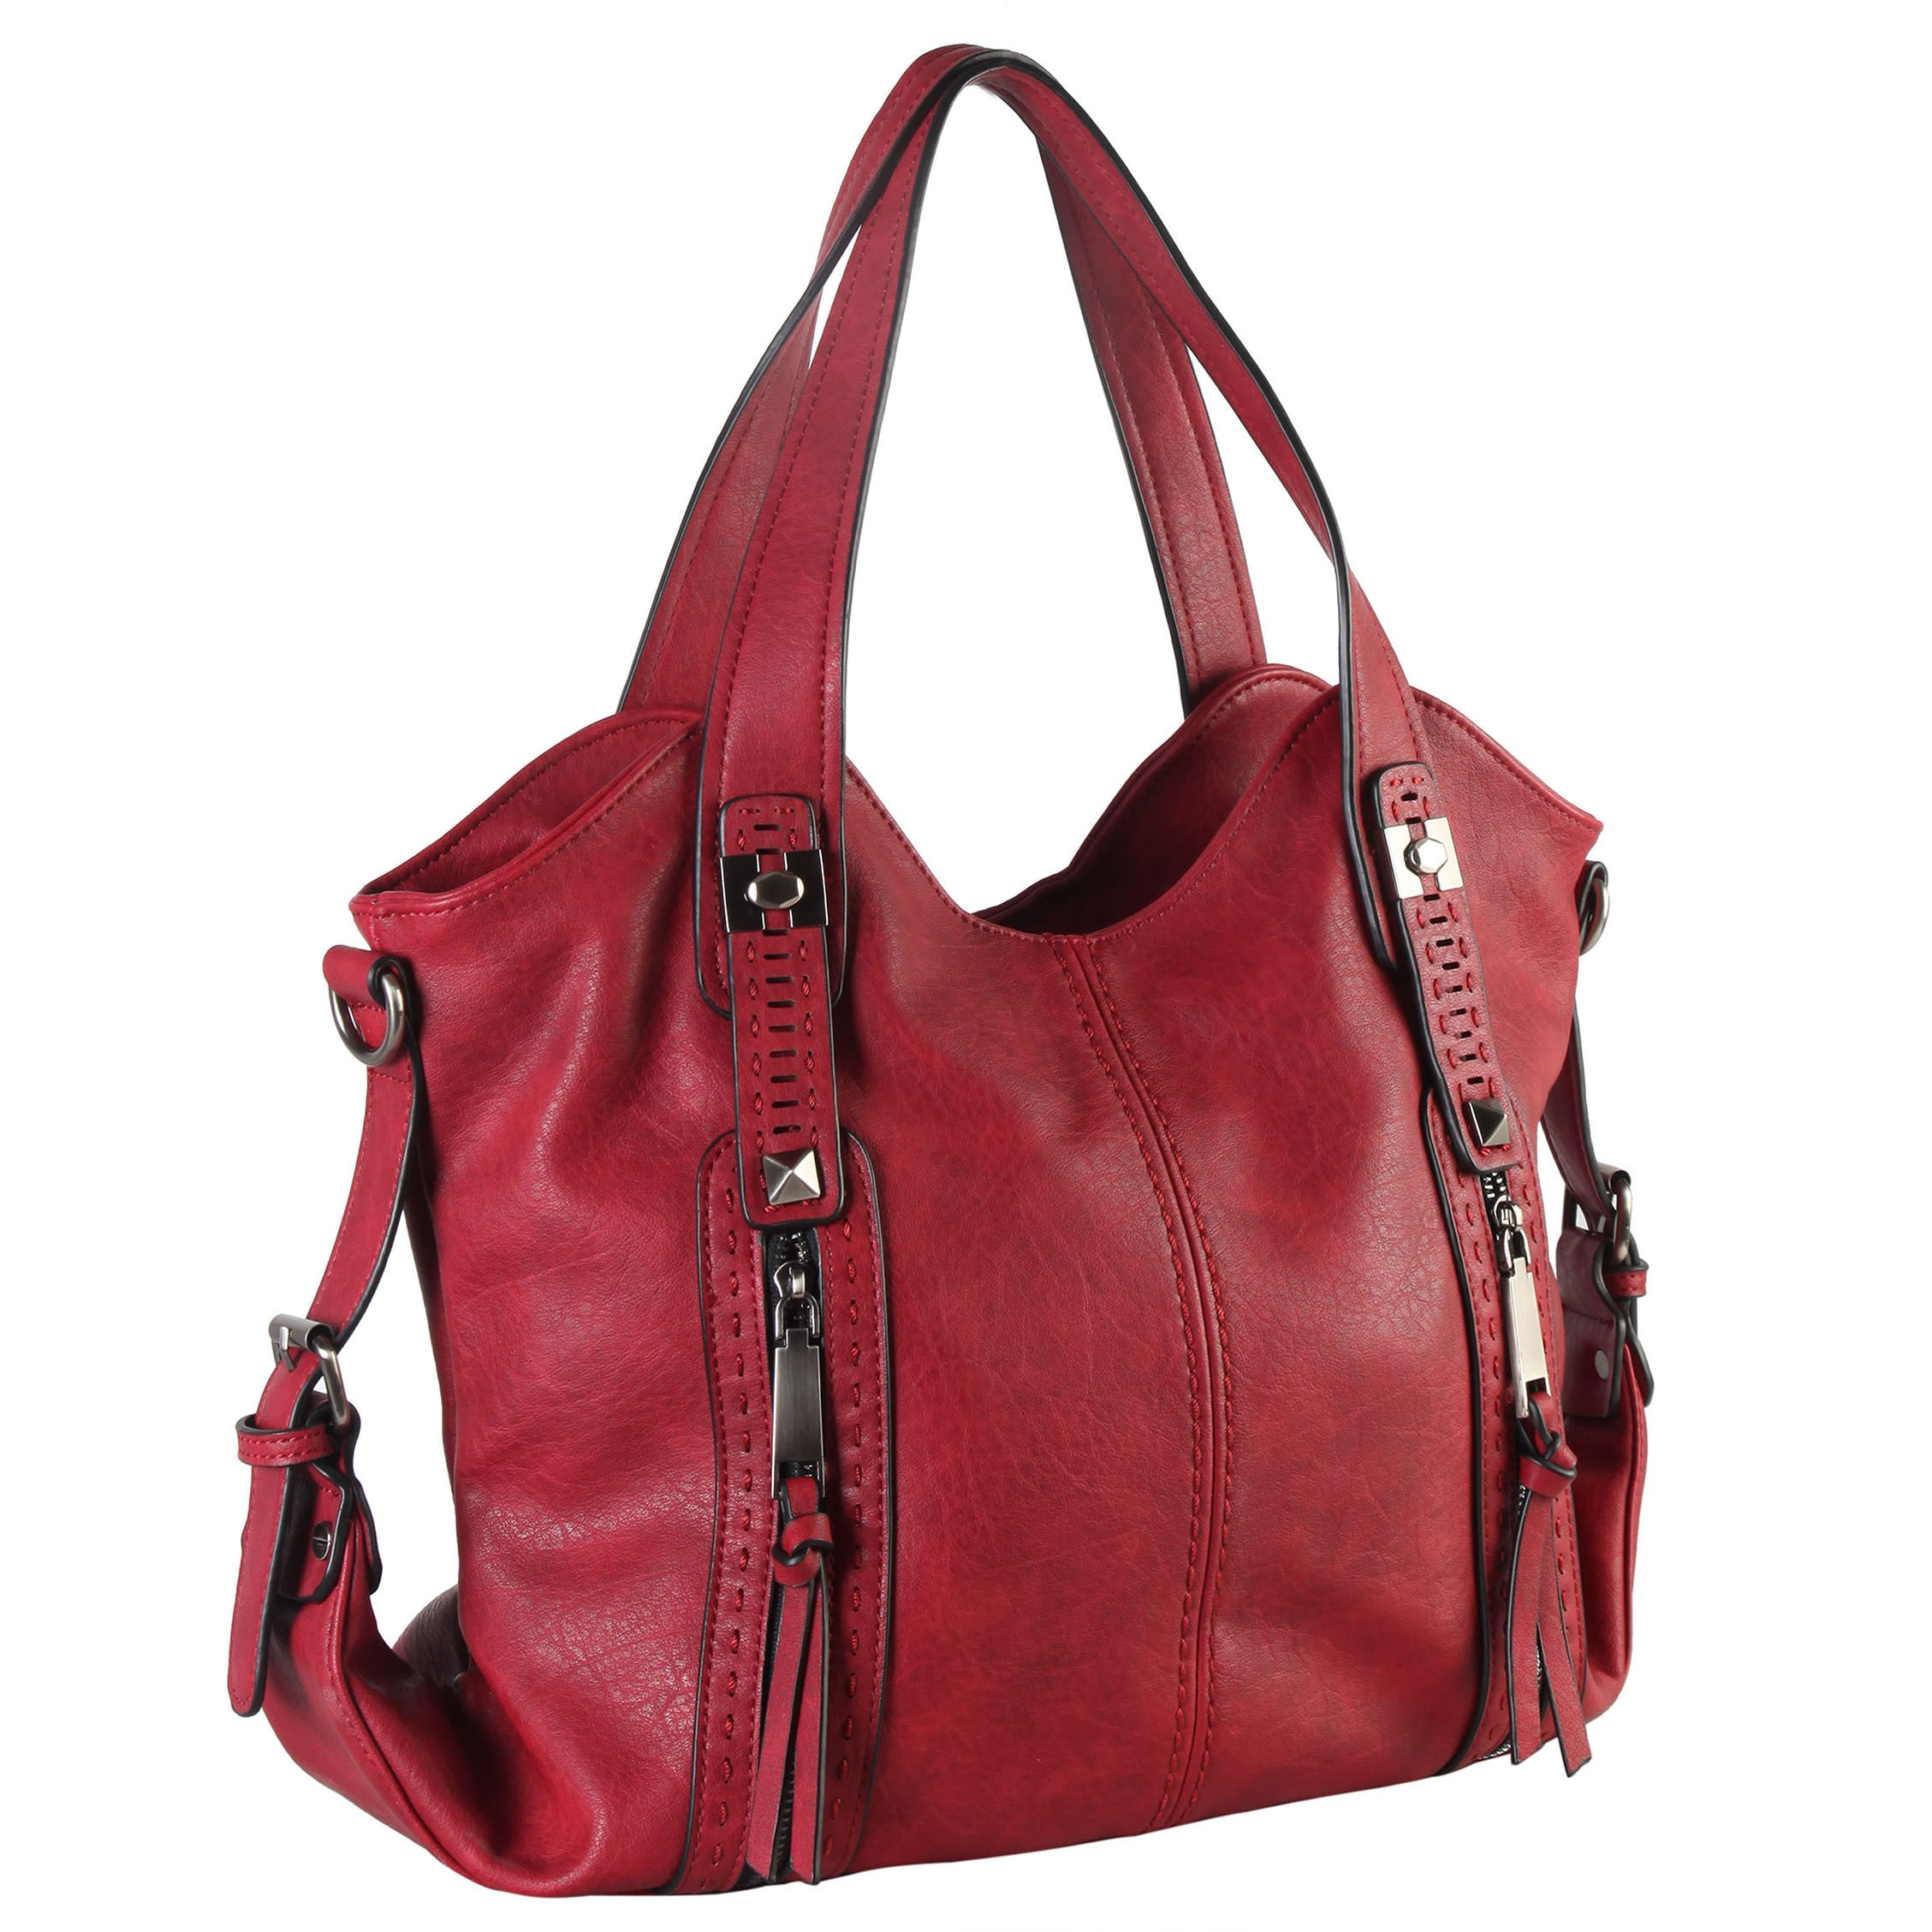 99d96ce852c1 Shop Diophy Faux Leather Double Front Pockets Hobo Handbag - Free Shipping  Today - Overstock - 12820496